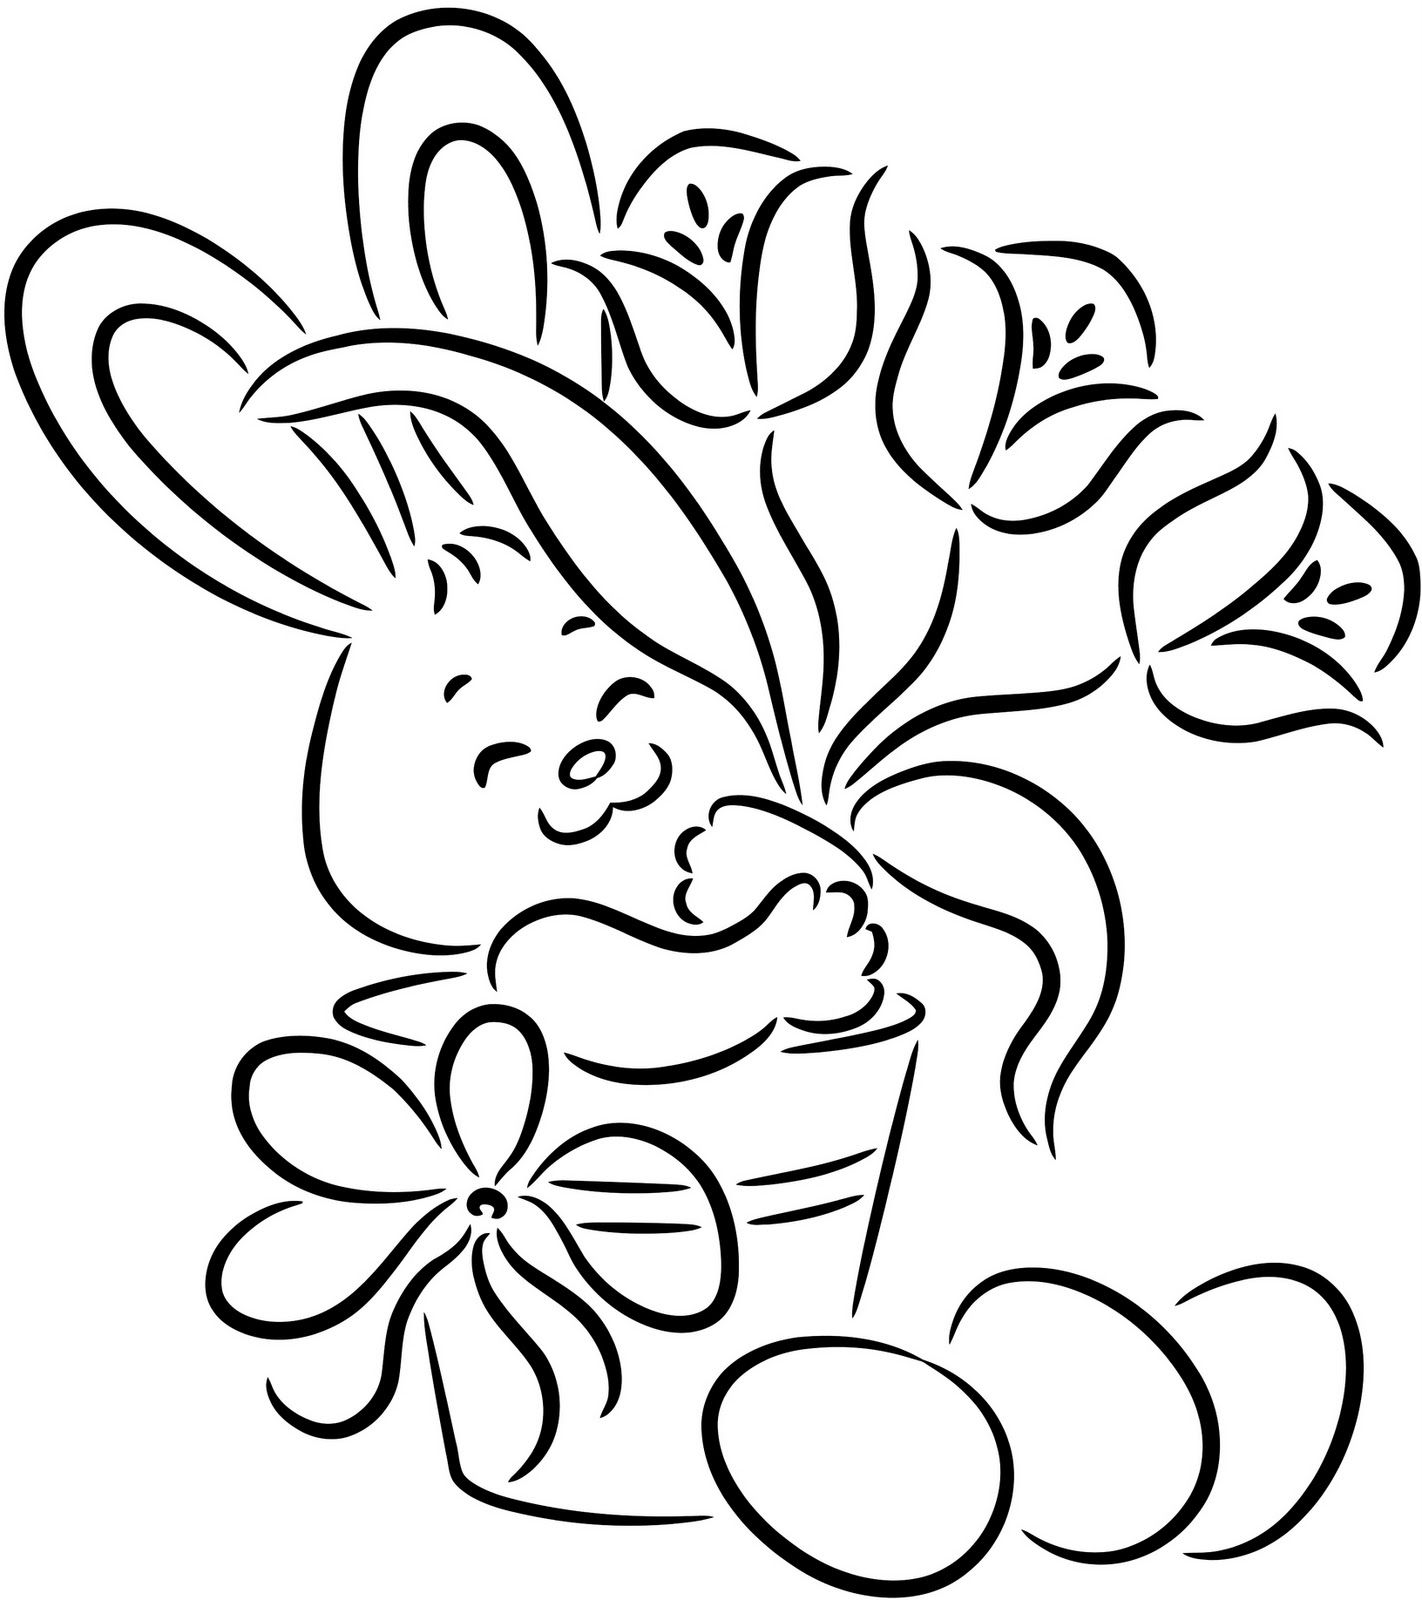 Fun free mermaid games, easter bunny coloring pages, stock videos ...